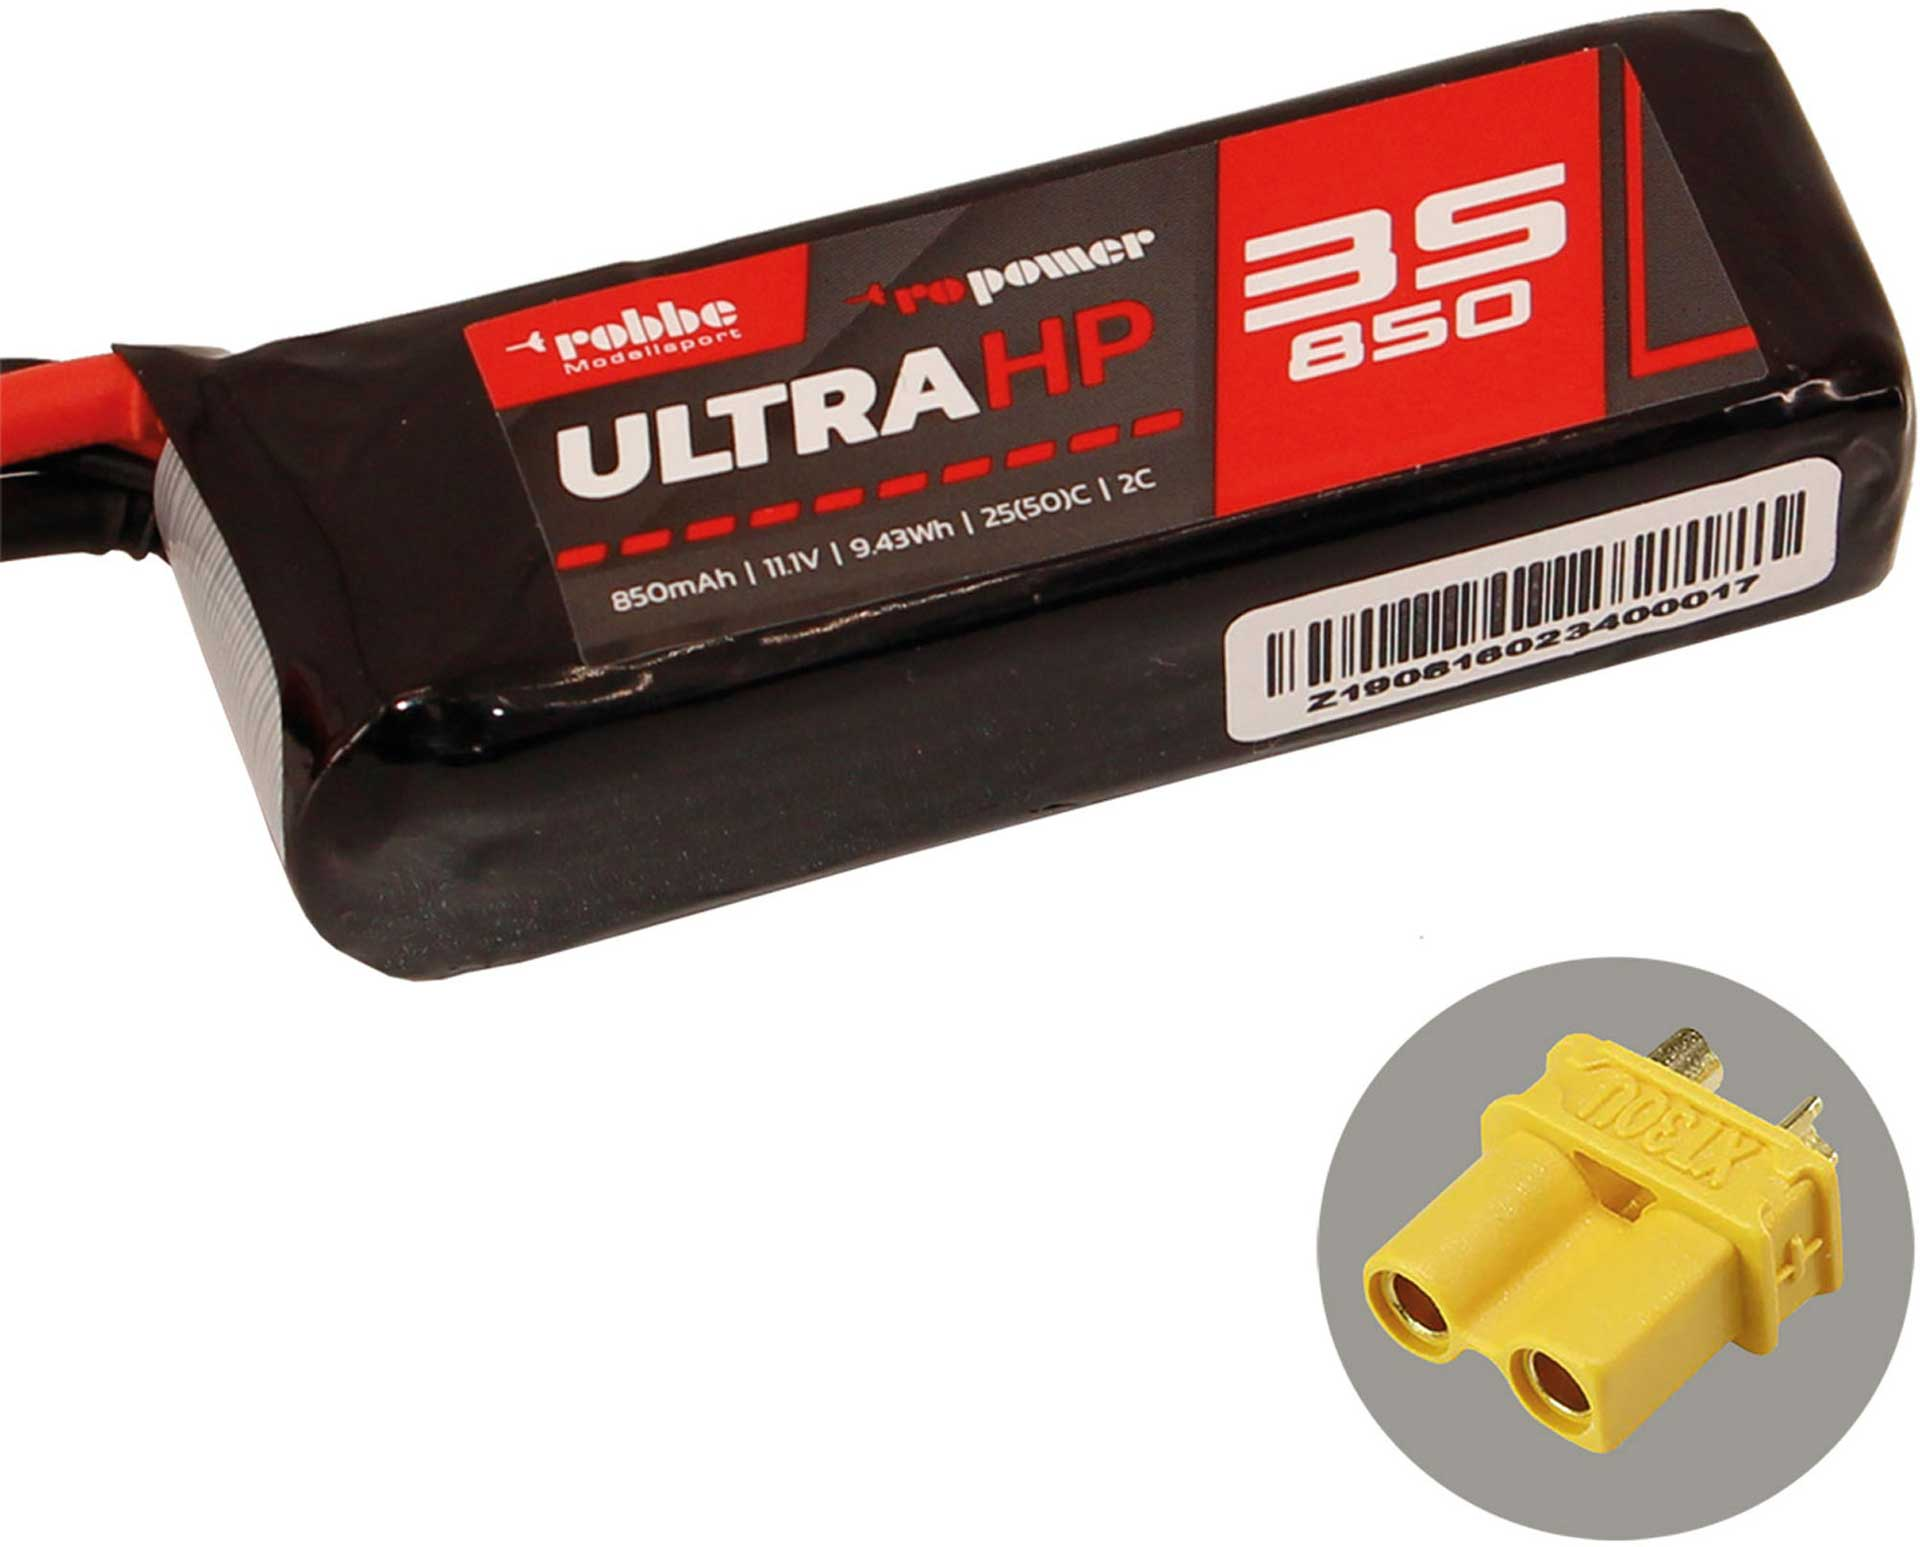 ROBBE RO-POWER ULTRA HP 850MAH 11,1 VOLT 3S